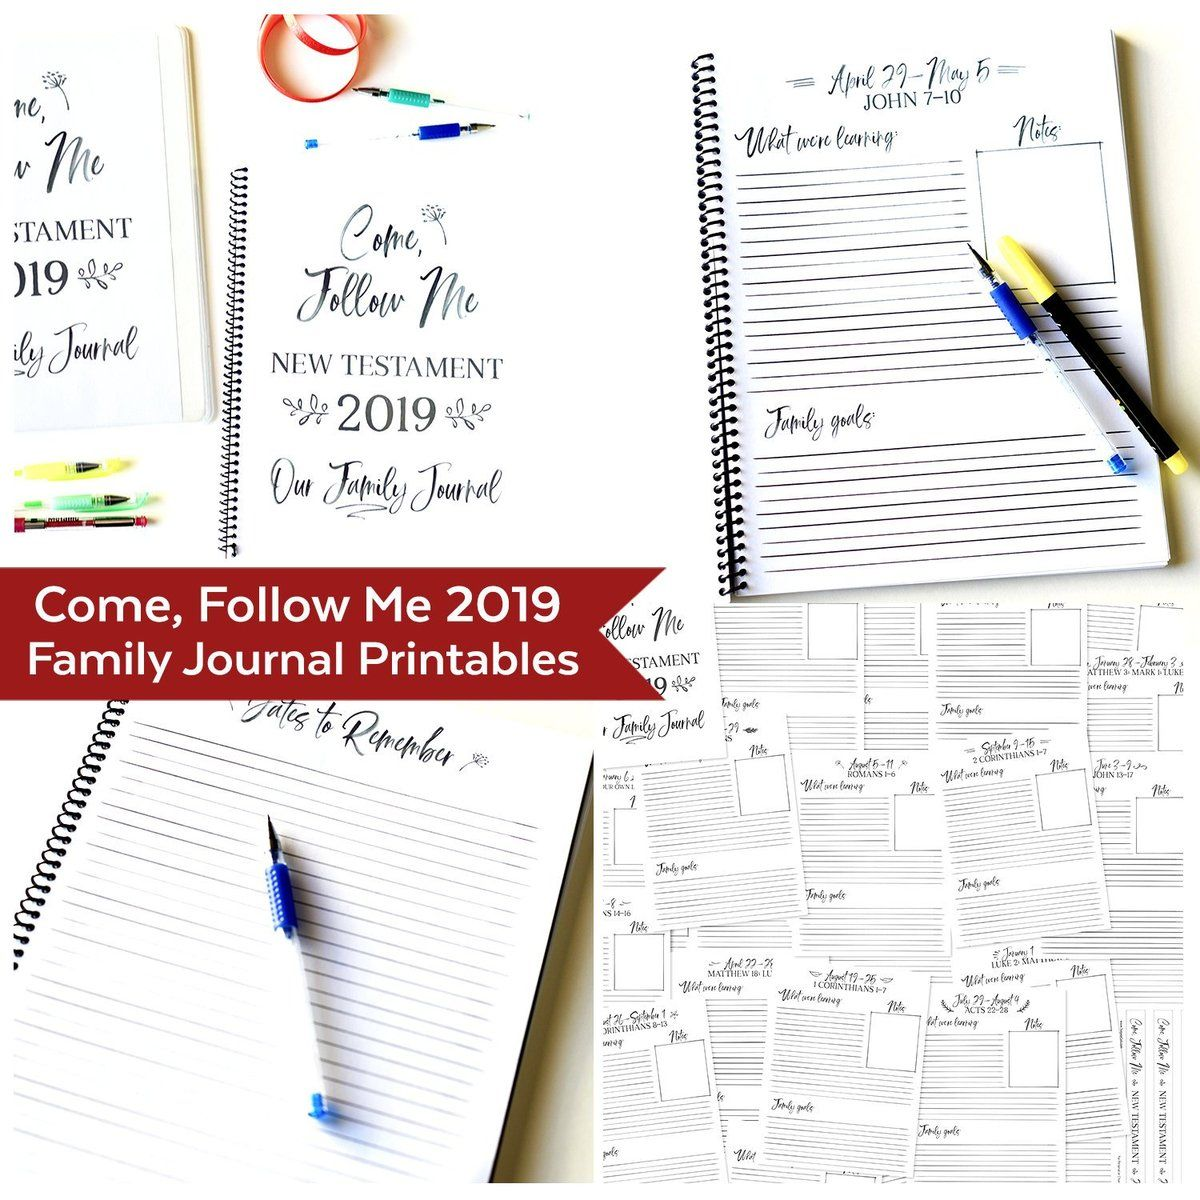 Come Follow Me Family Journal